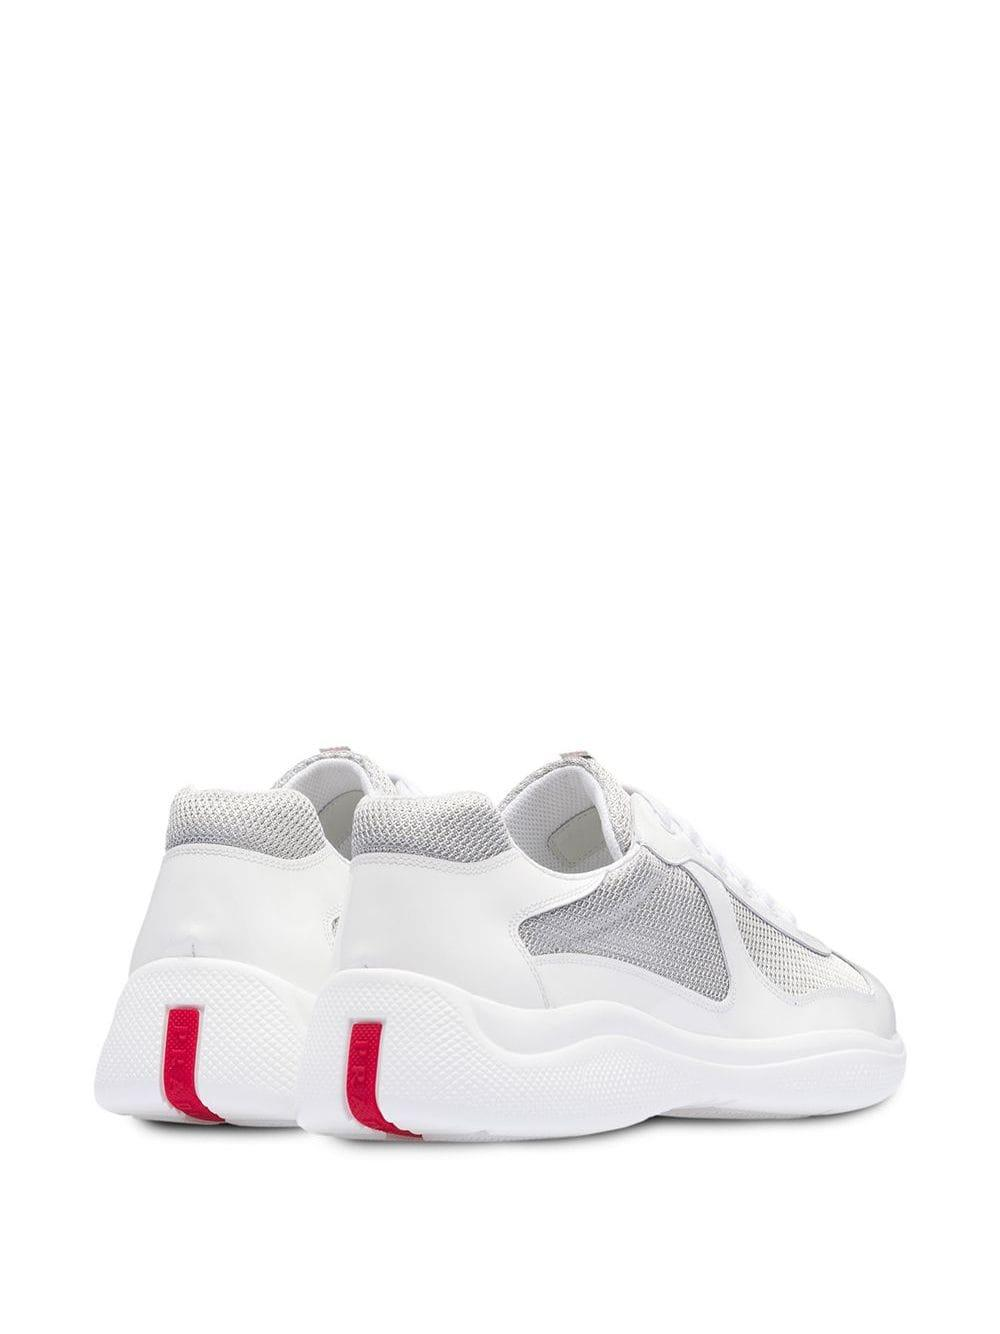 Prada Leather Technical Sneakers in White for Men